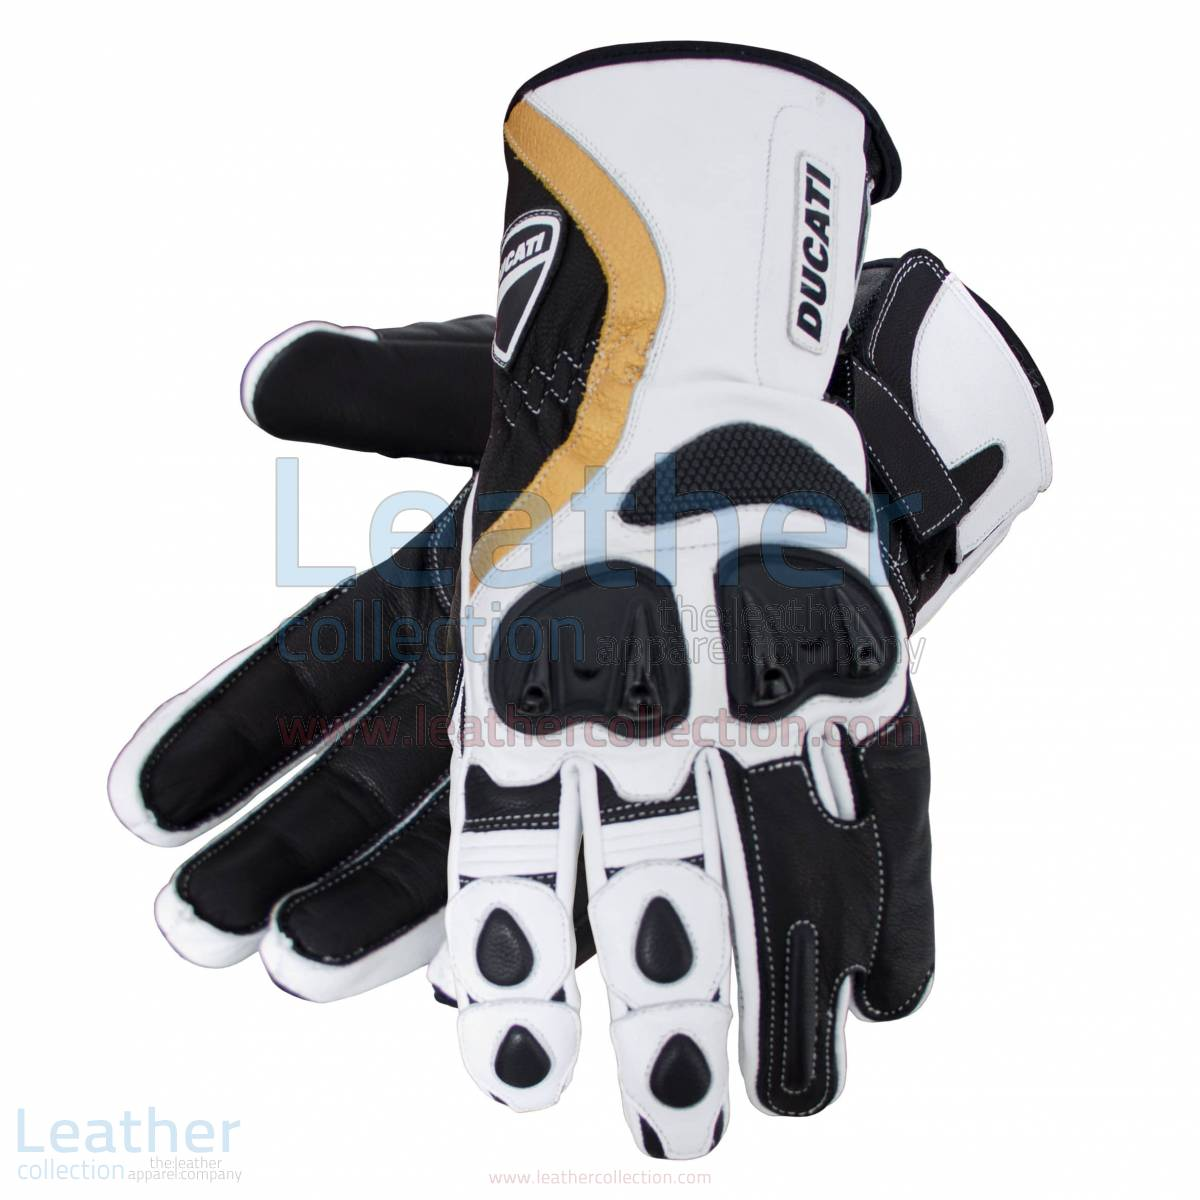 Ducati Motorcycle Leather Gloves – Ducati Gloves